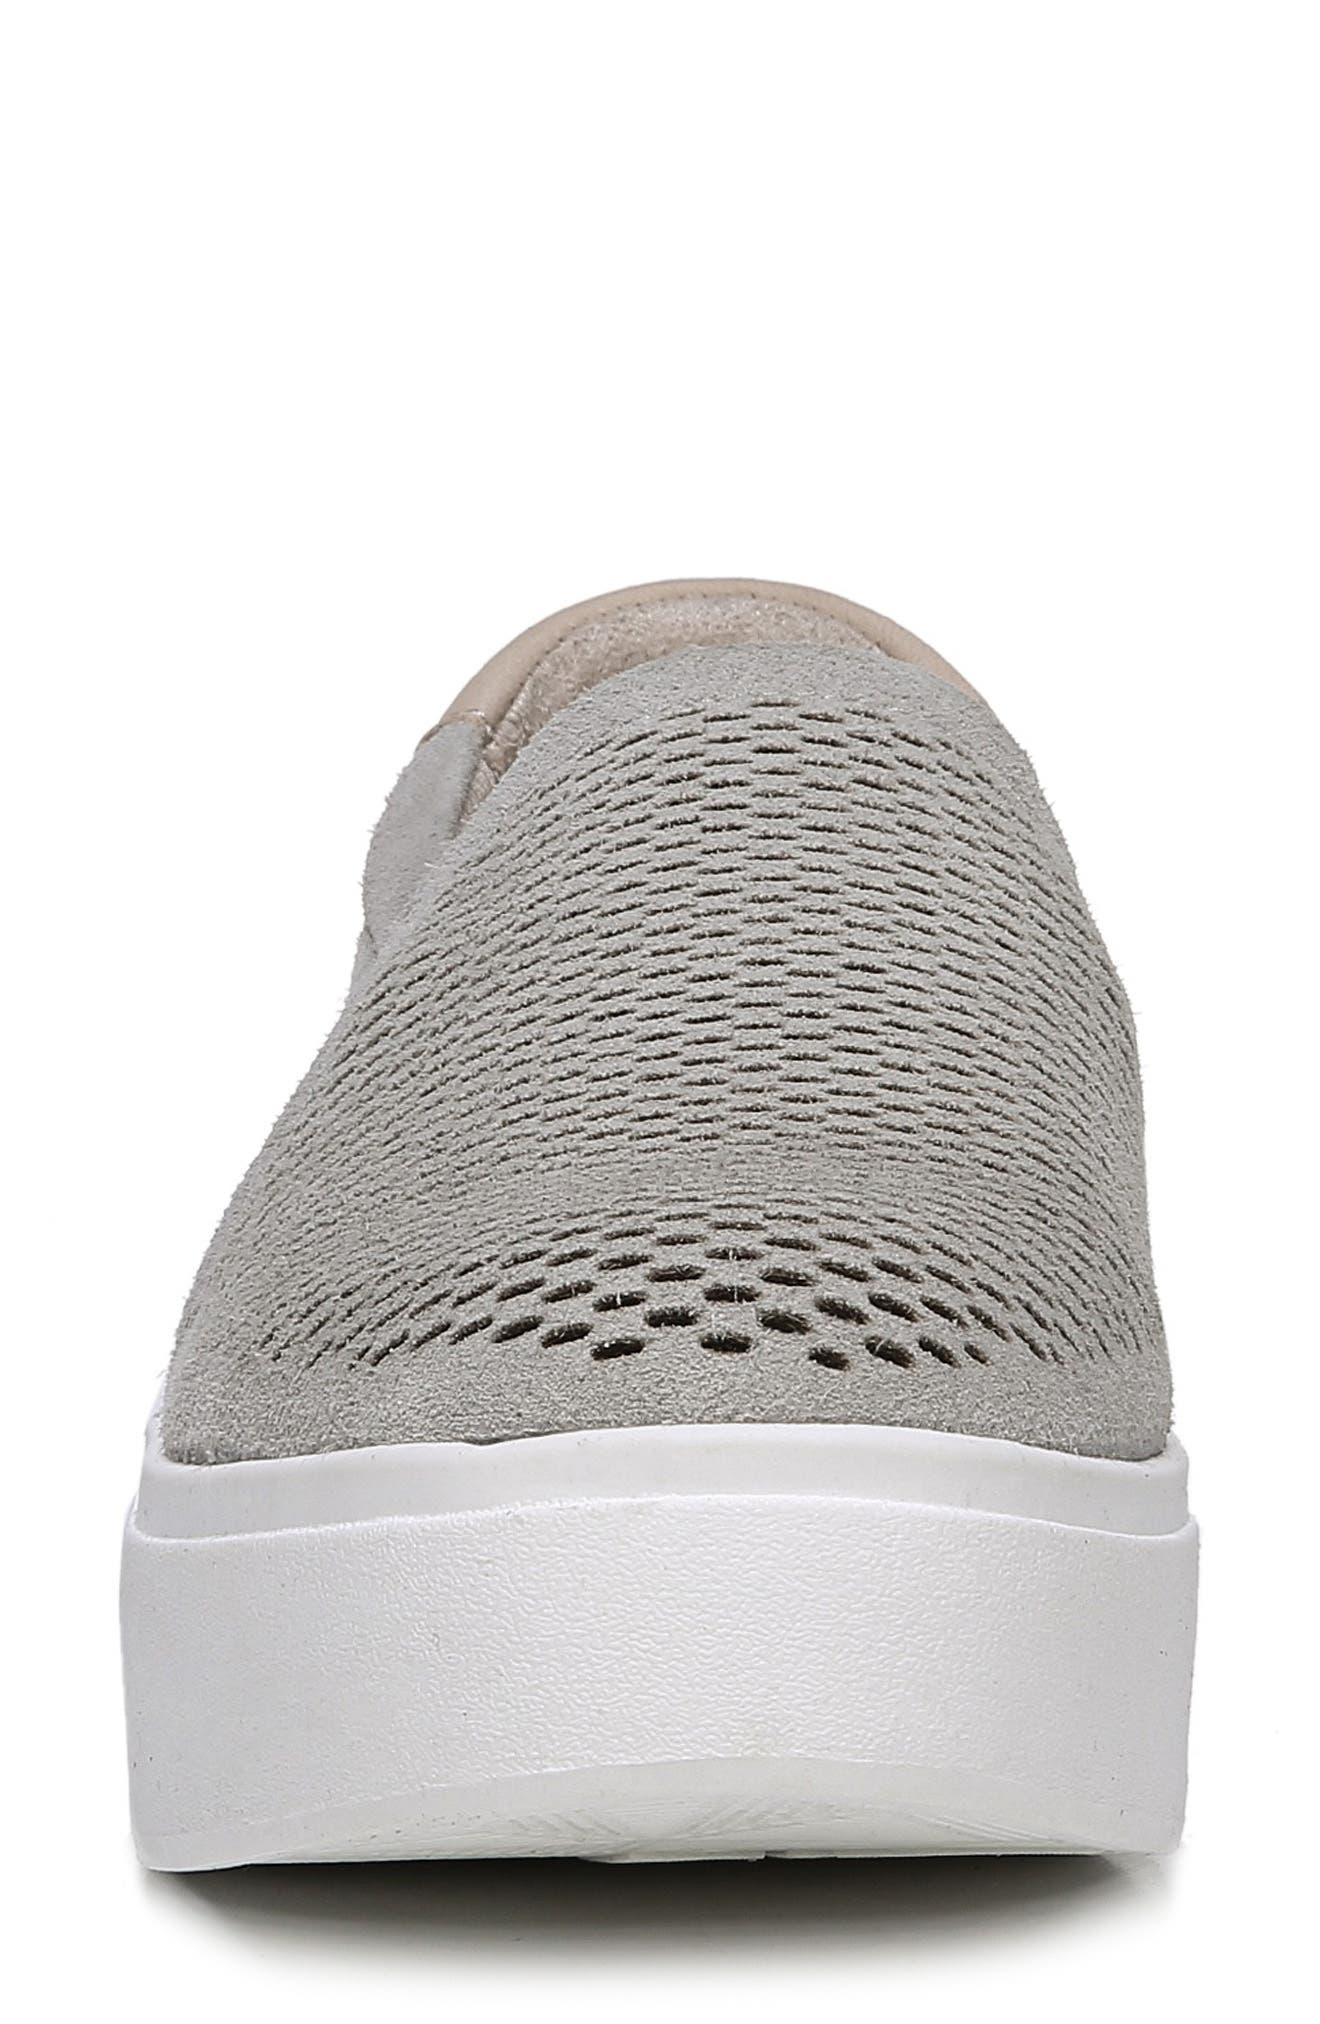 Abbot Lux Sneaker,                             Alternate thumbnail 4, color,                             GREY LEATHER